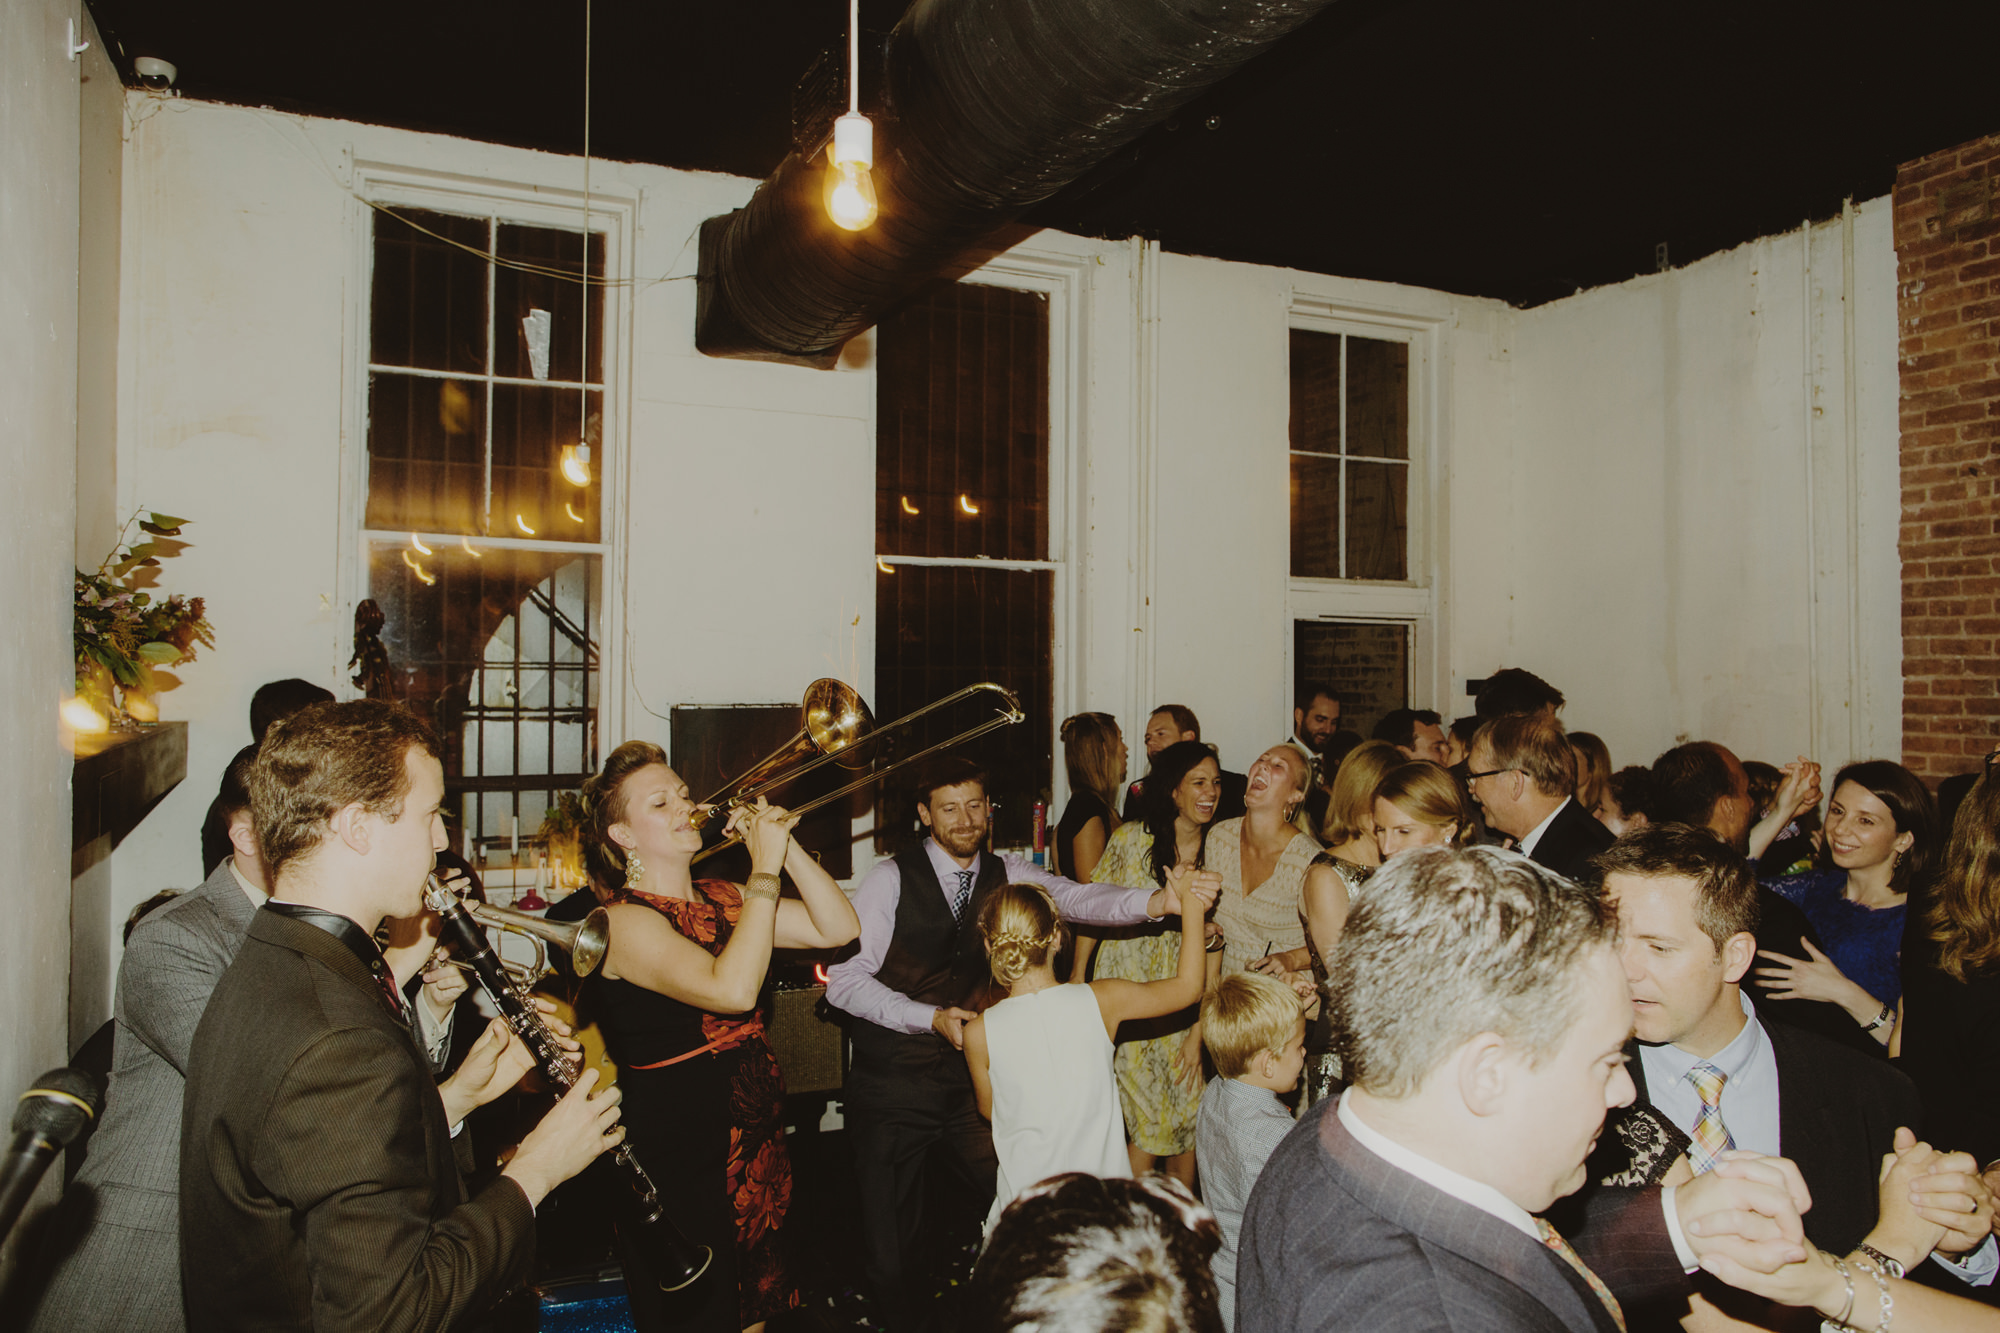 brooklyn_wedding_flatbushfarm_sammblake_058.jpg